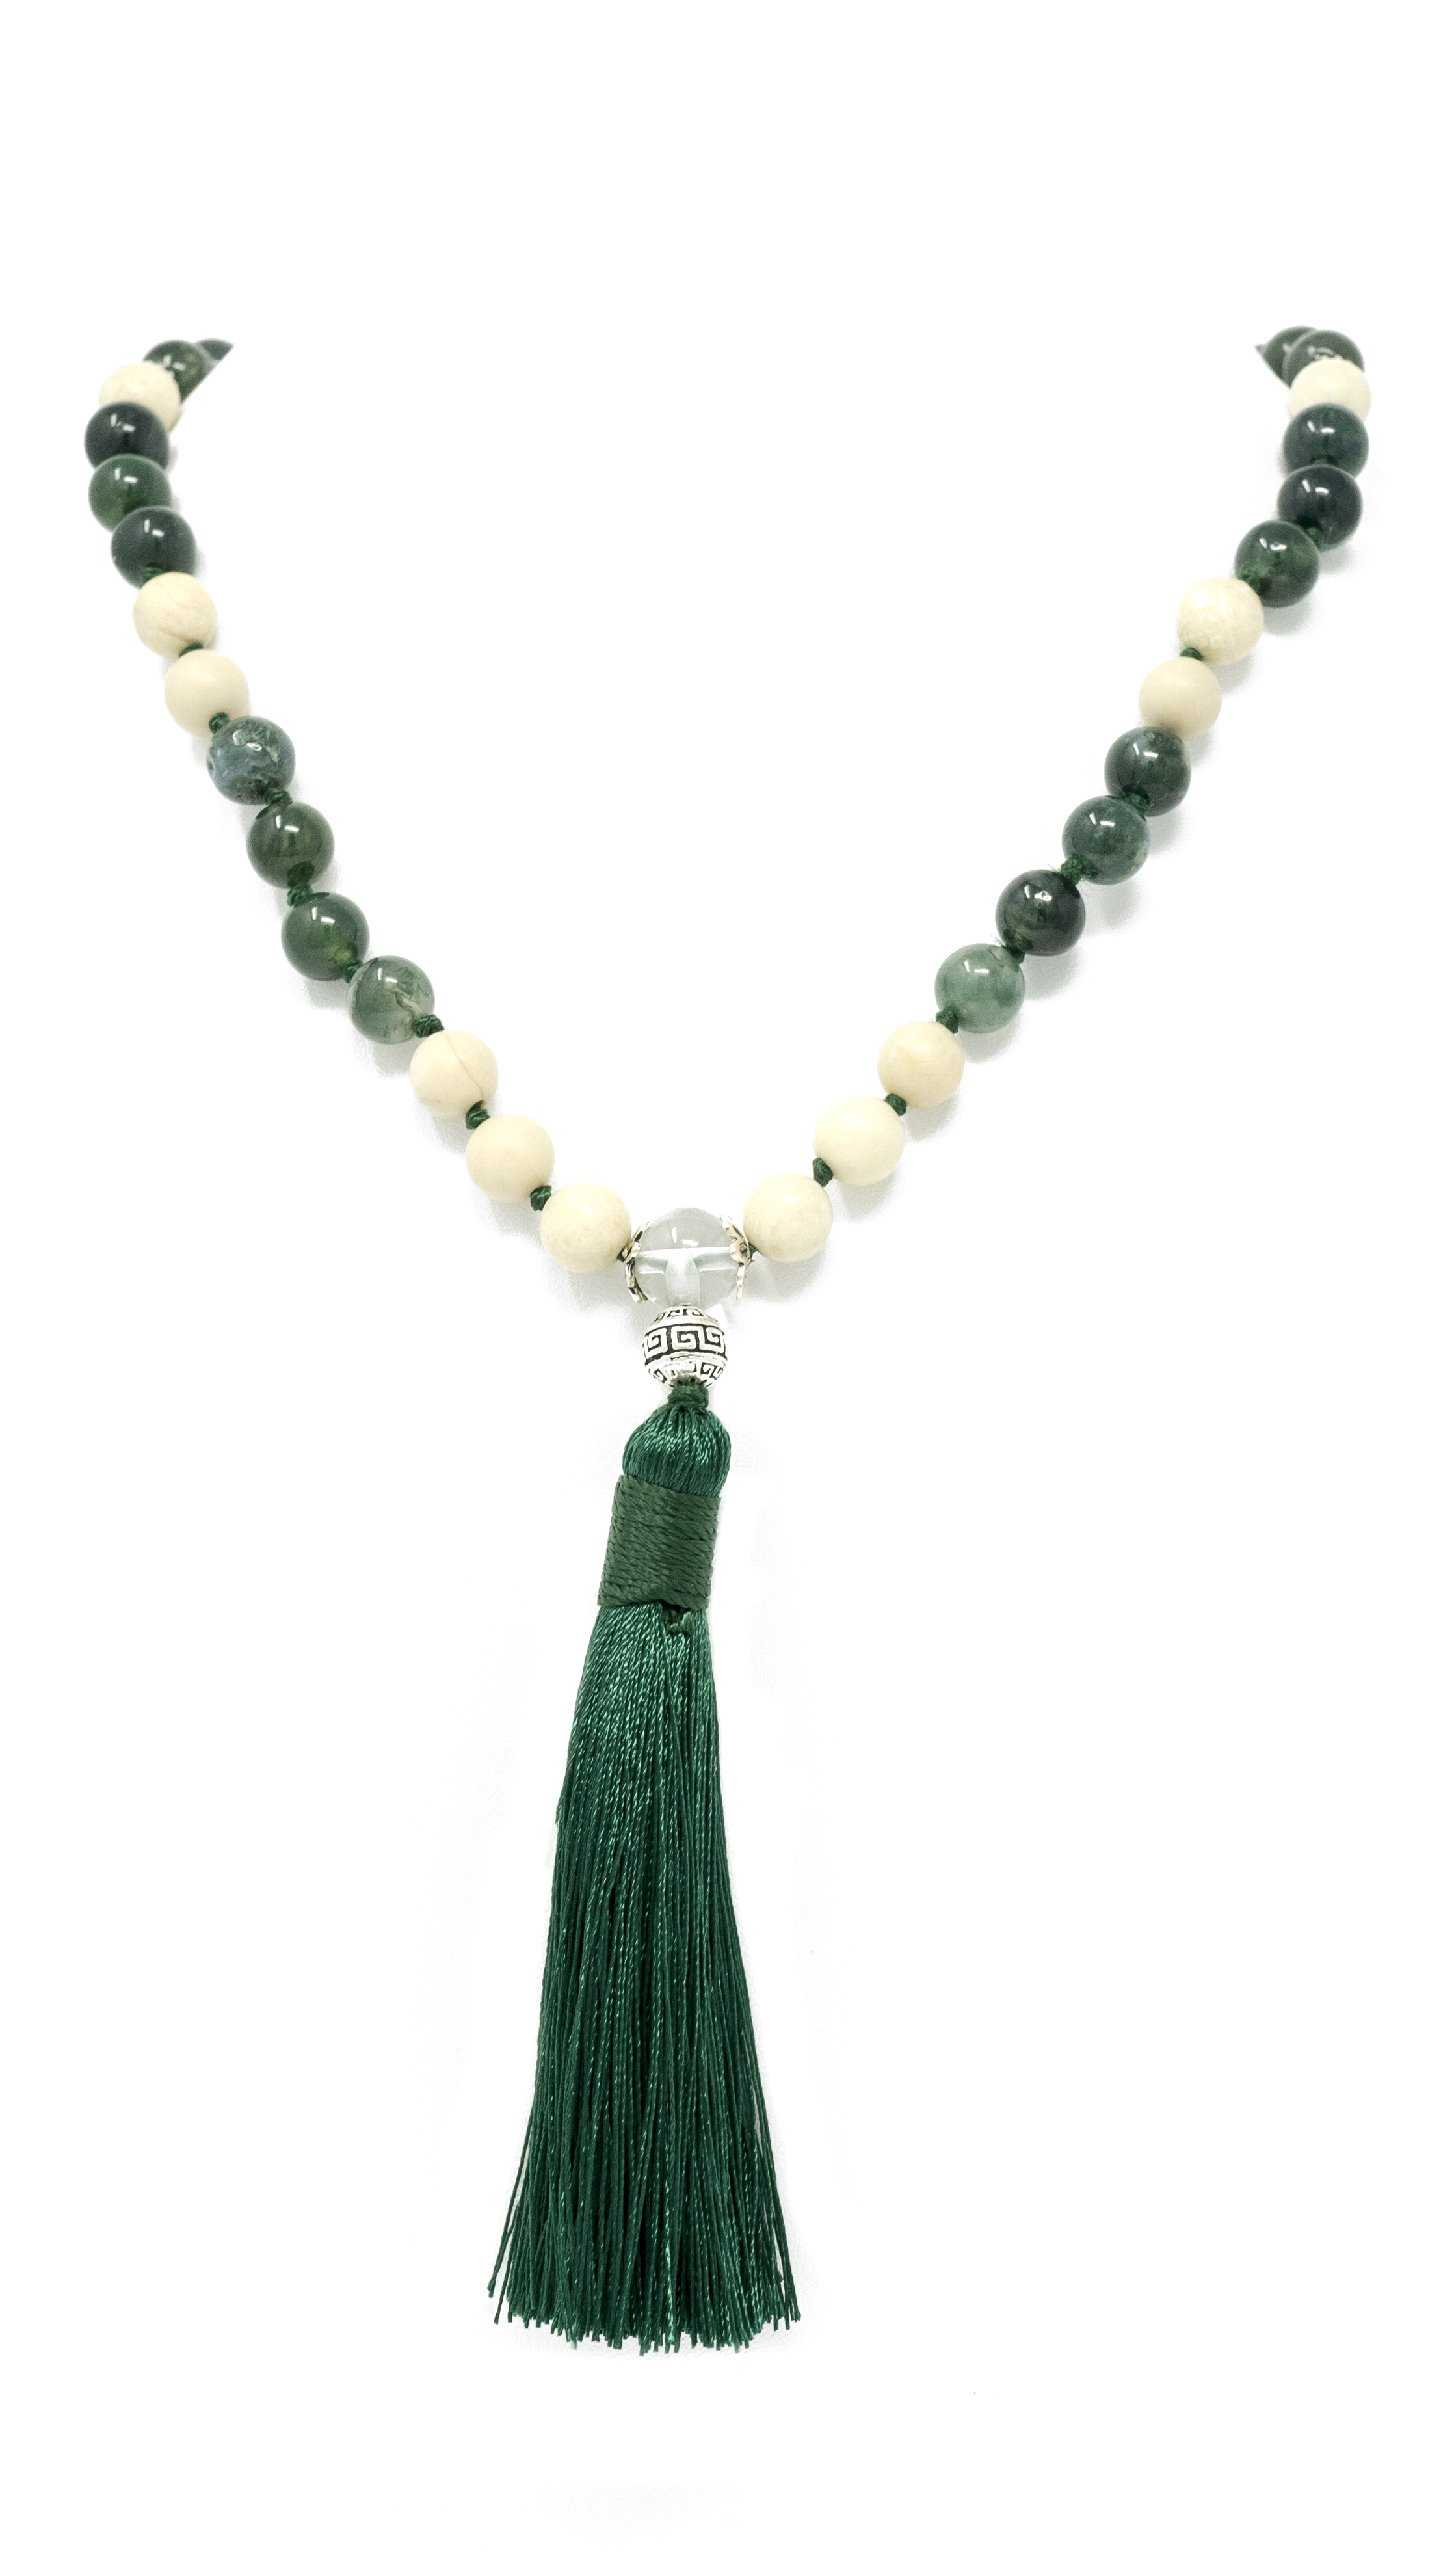 Moss Agate And Riverstone Larimar Accessories Premium 8mm Natural Gemstone Mala Beads Necklace | Larimar Accessories